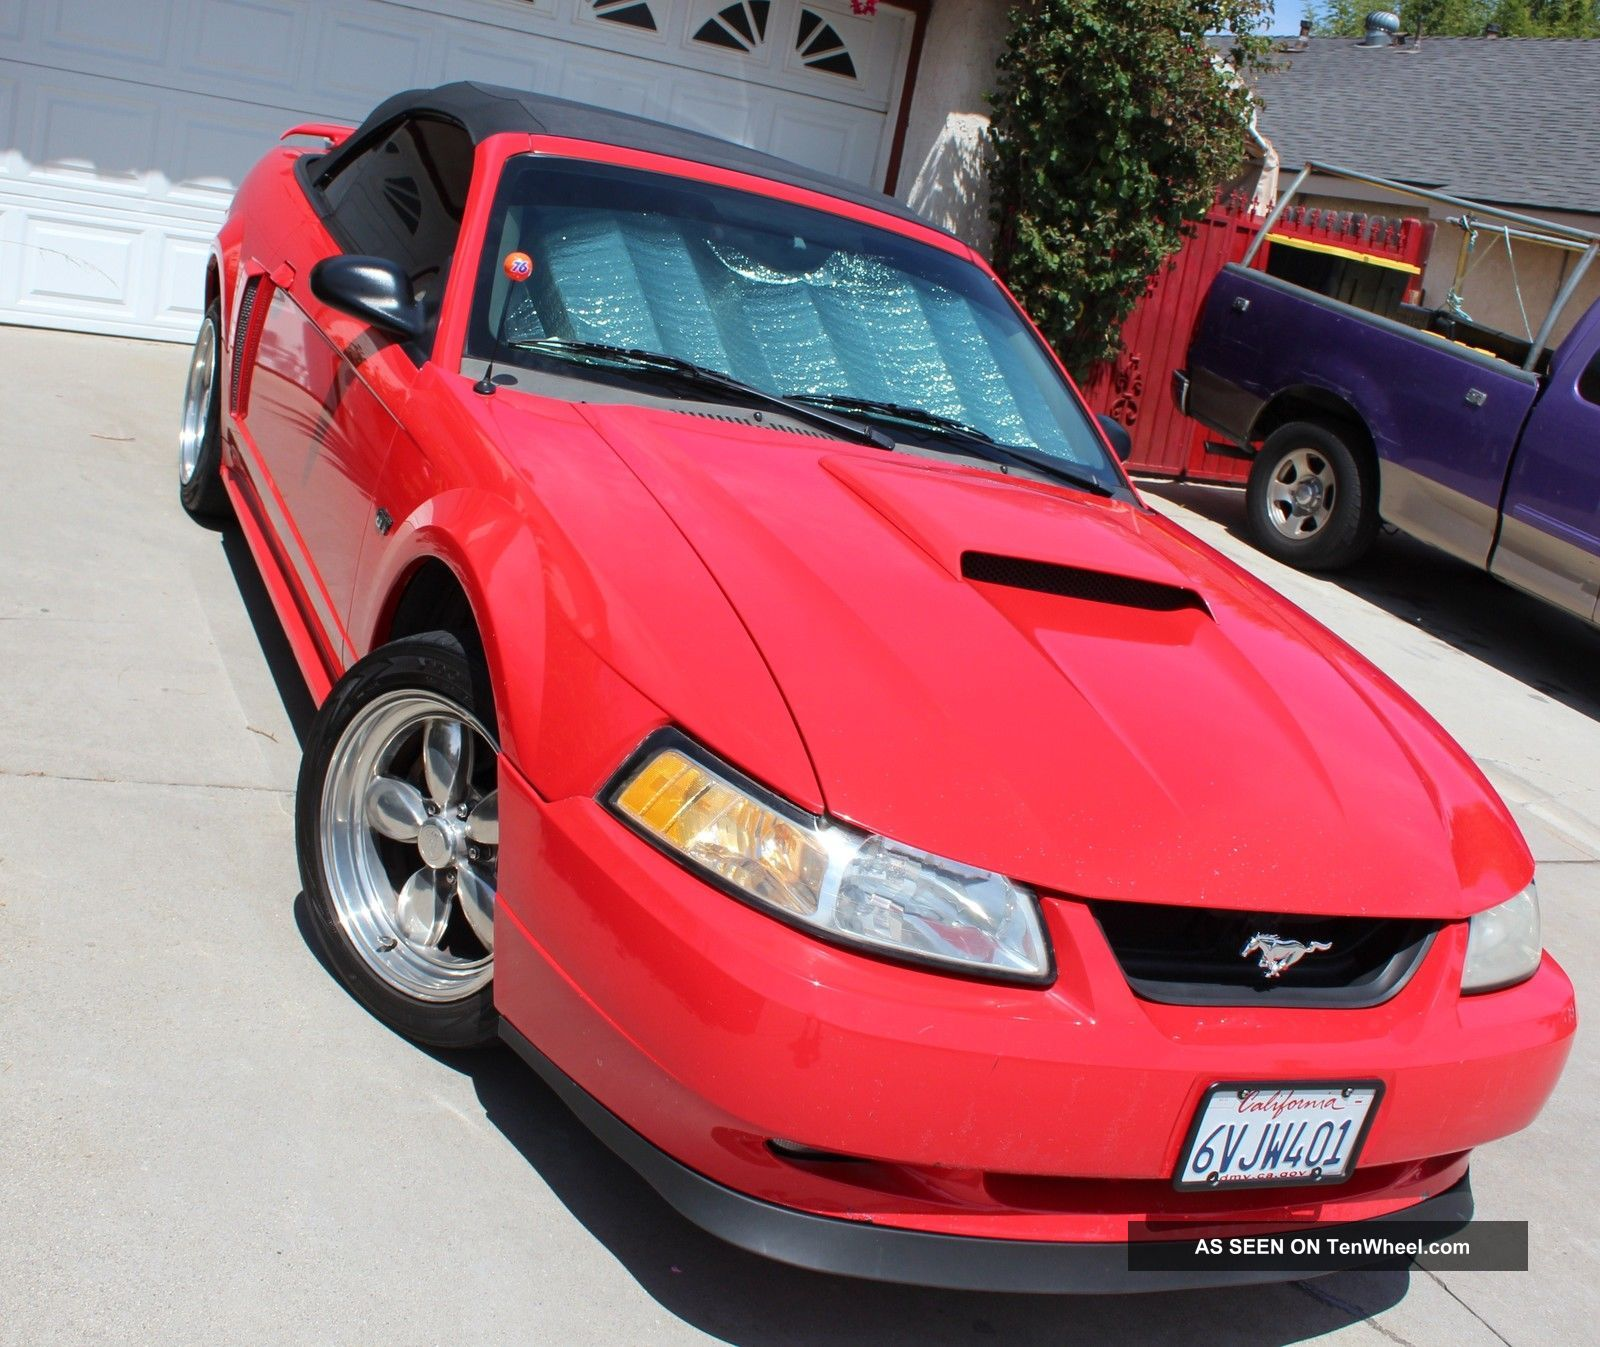 Bmw Convertible Cars: 2001 Ford Mustang Gt Convertible Performance Red